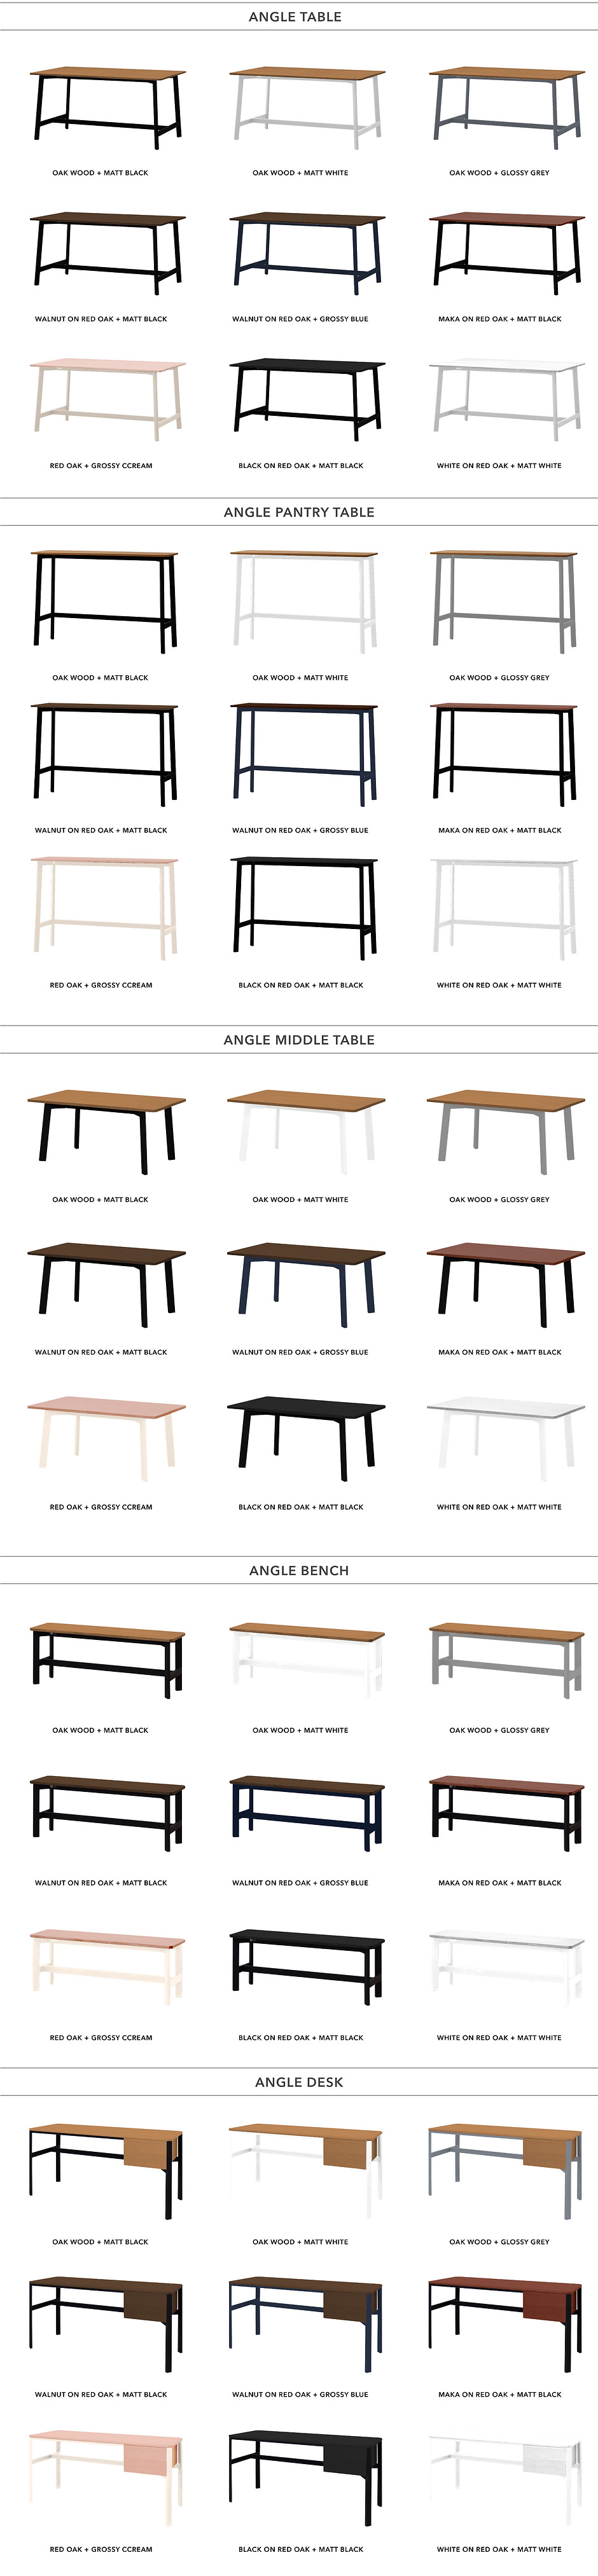 FLO_ONLINE_PRODUCT_ANGLE-Table.jpg